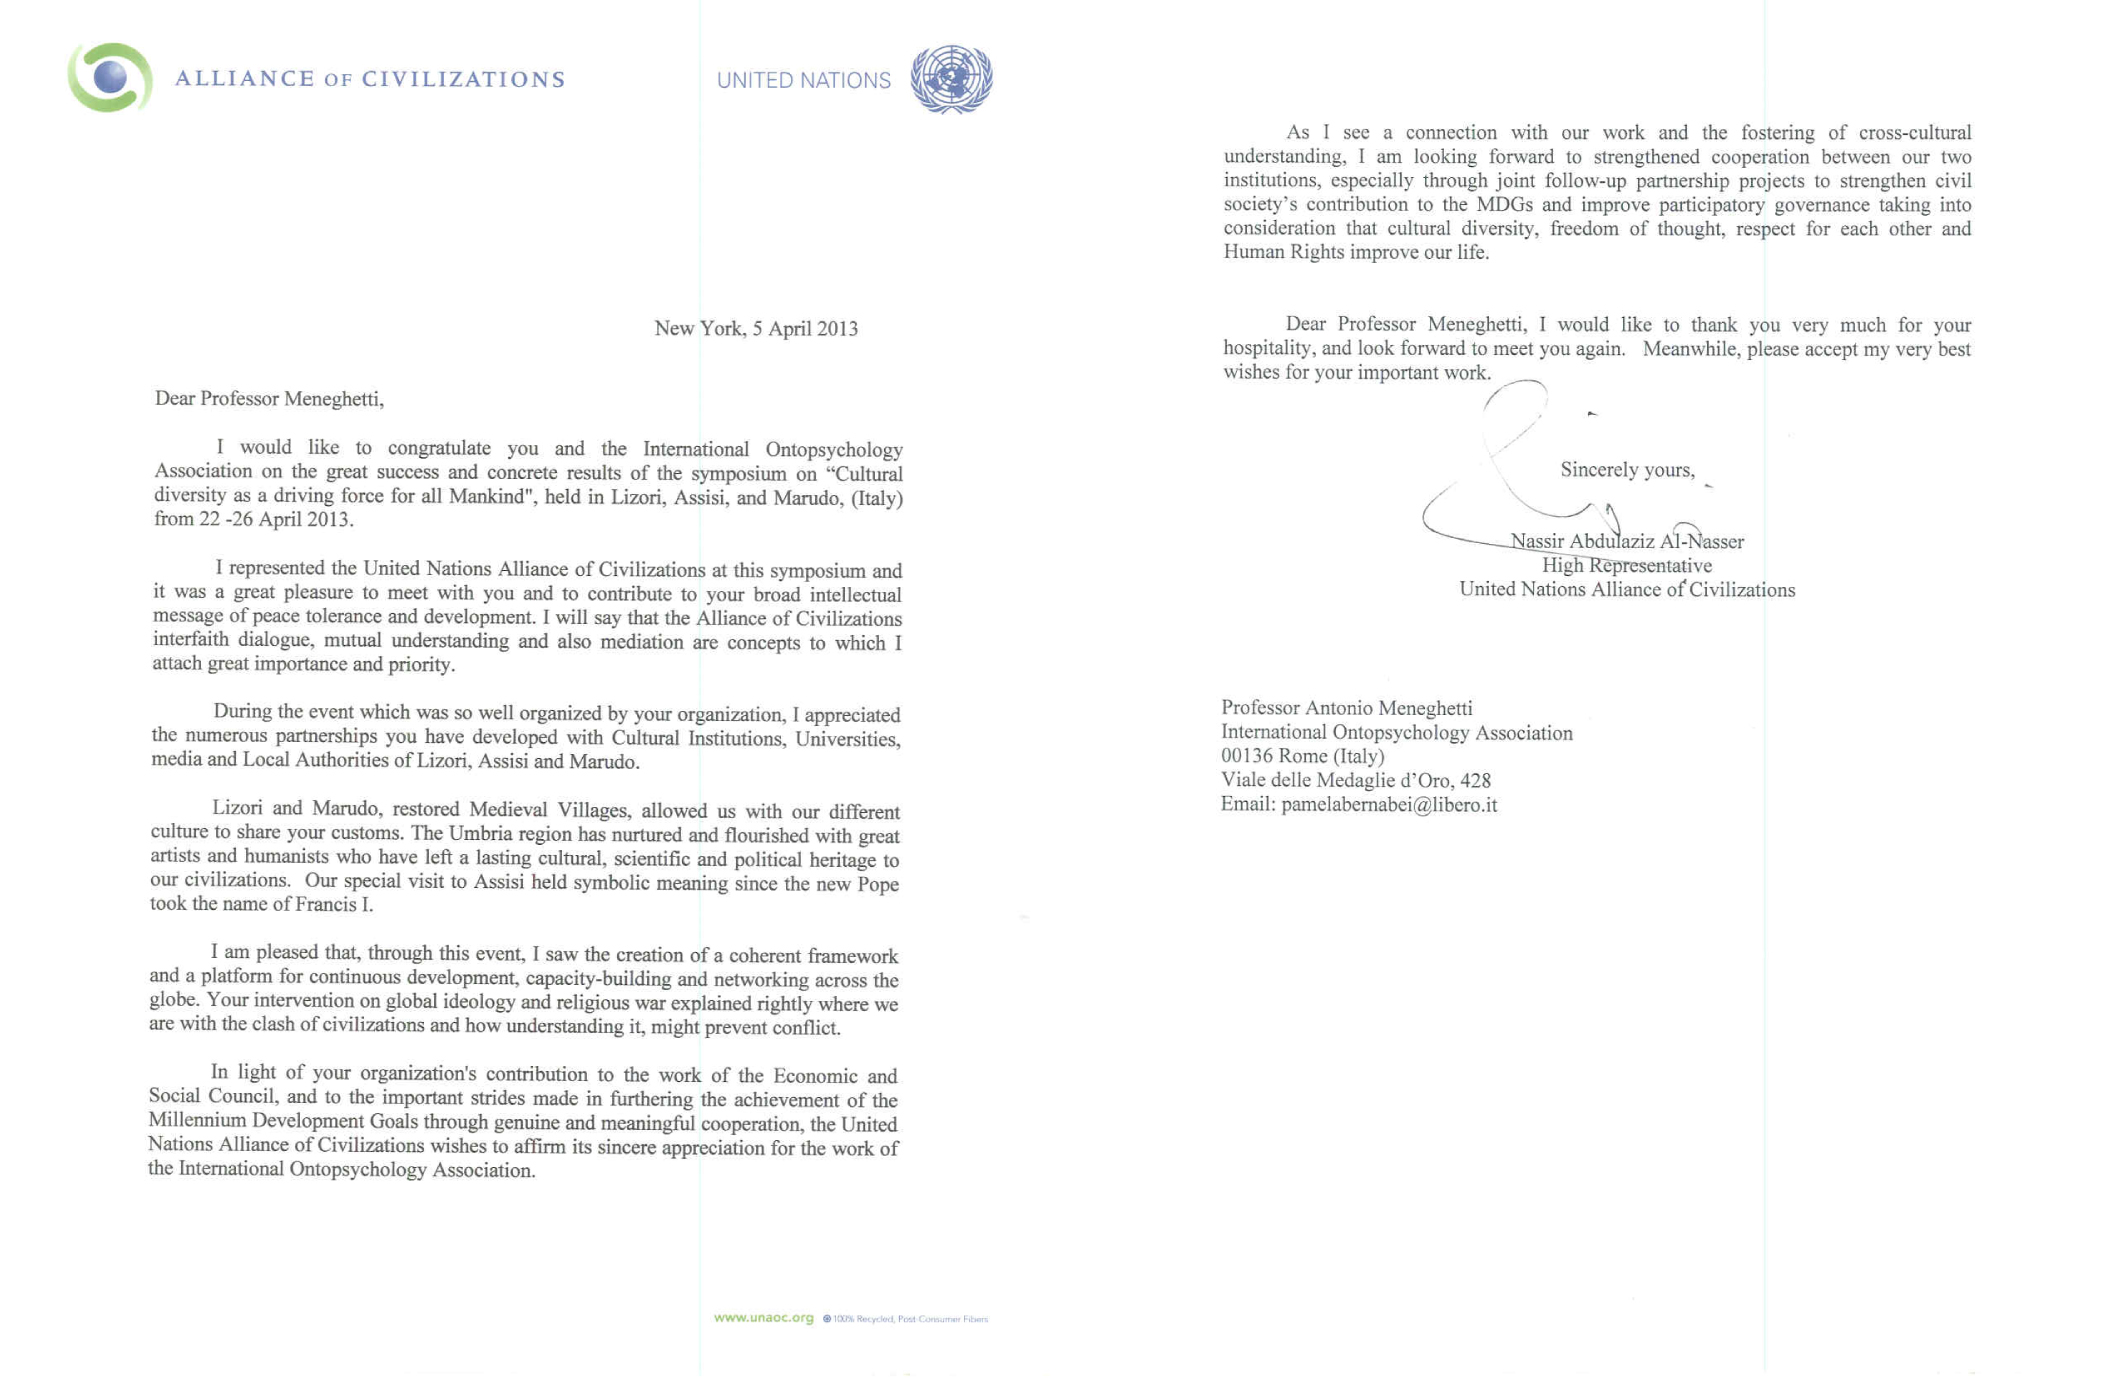 sito ufficiale dell associazione internazionale di ontopsicologia we post here the thank you letter from nassir al nasser high representative of the united nations alliance of civilizations for the round table promoted